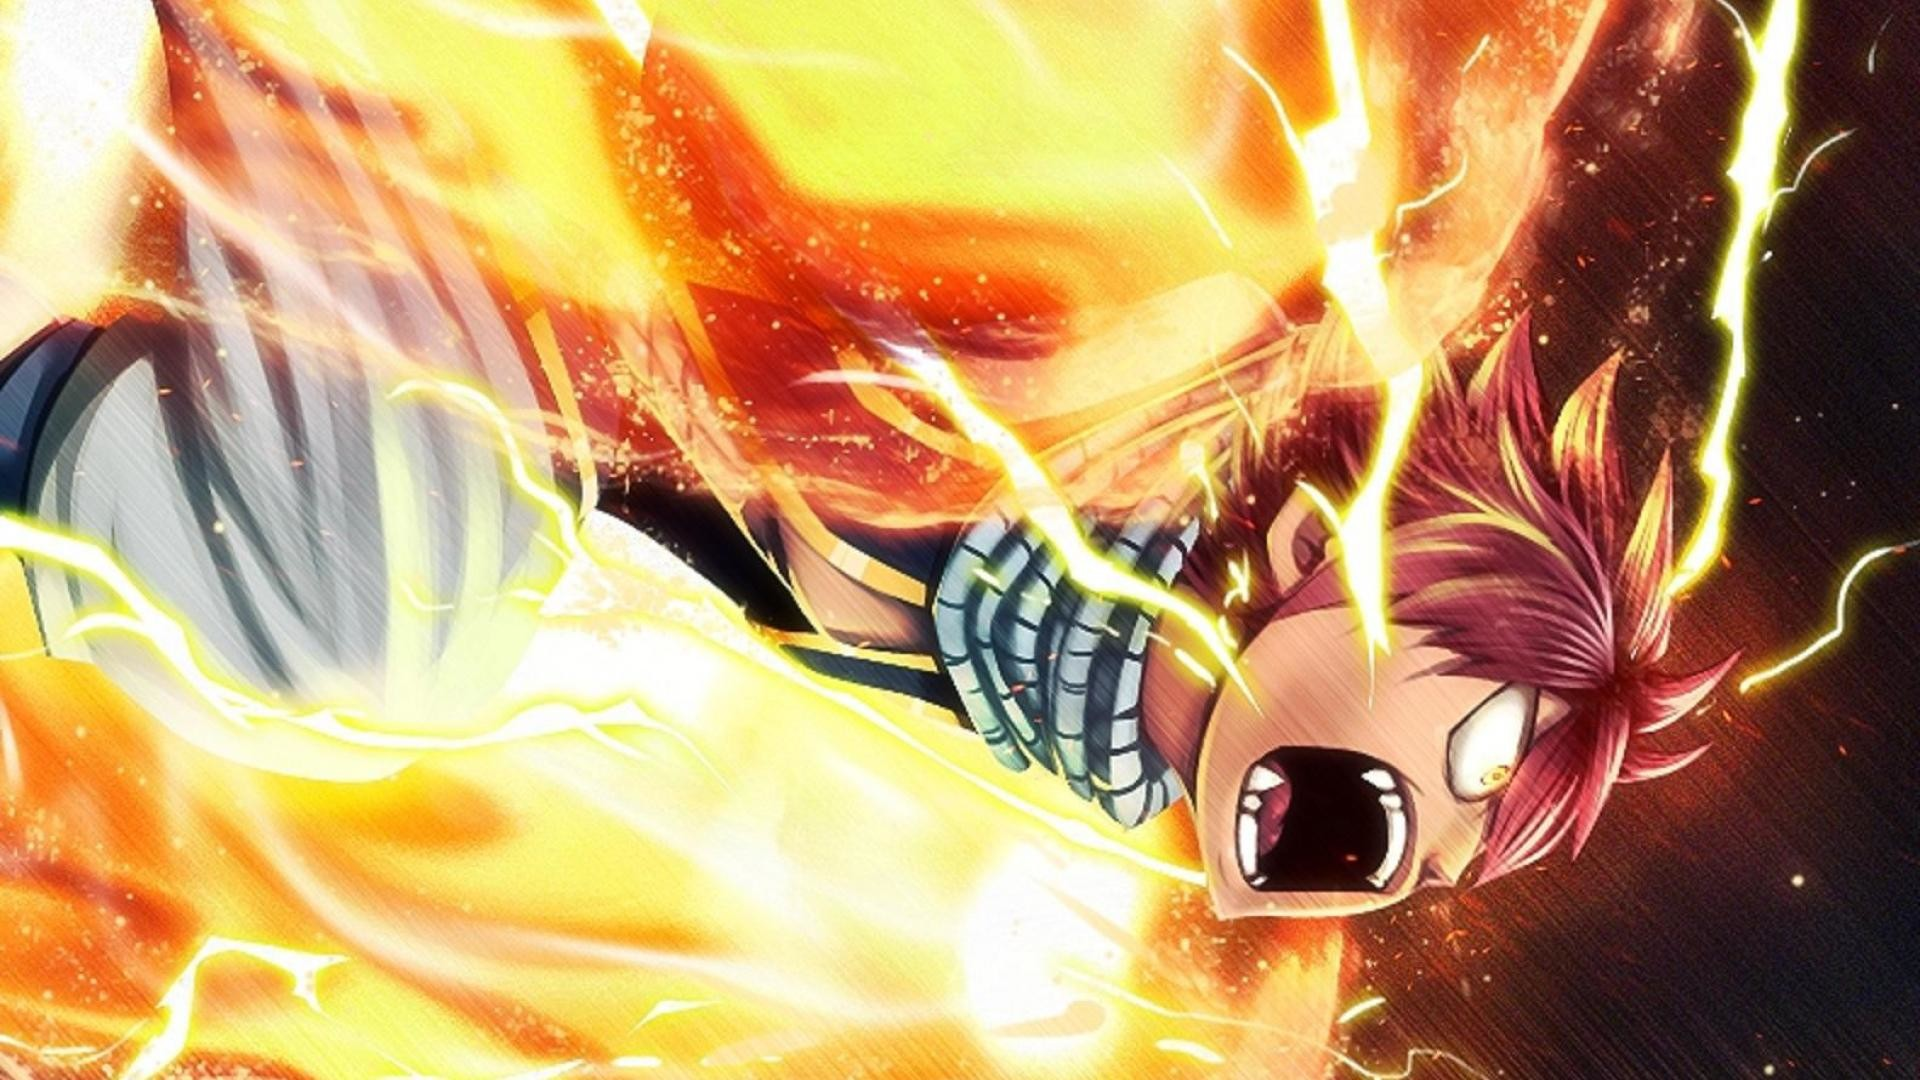 Fairy Tail Wallpapers Dragon Slayers Download